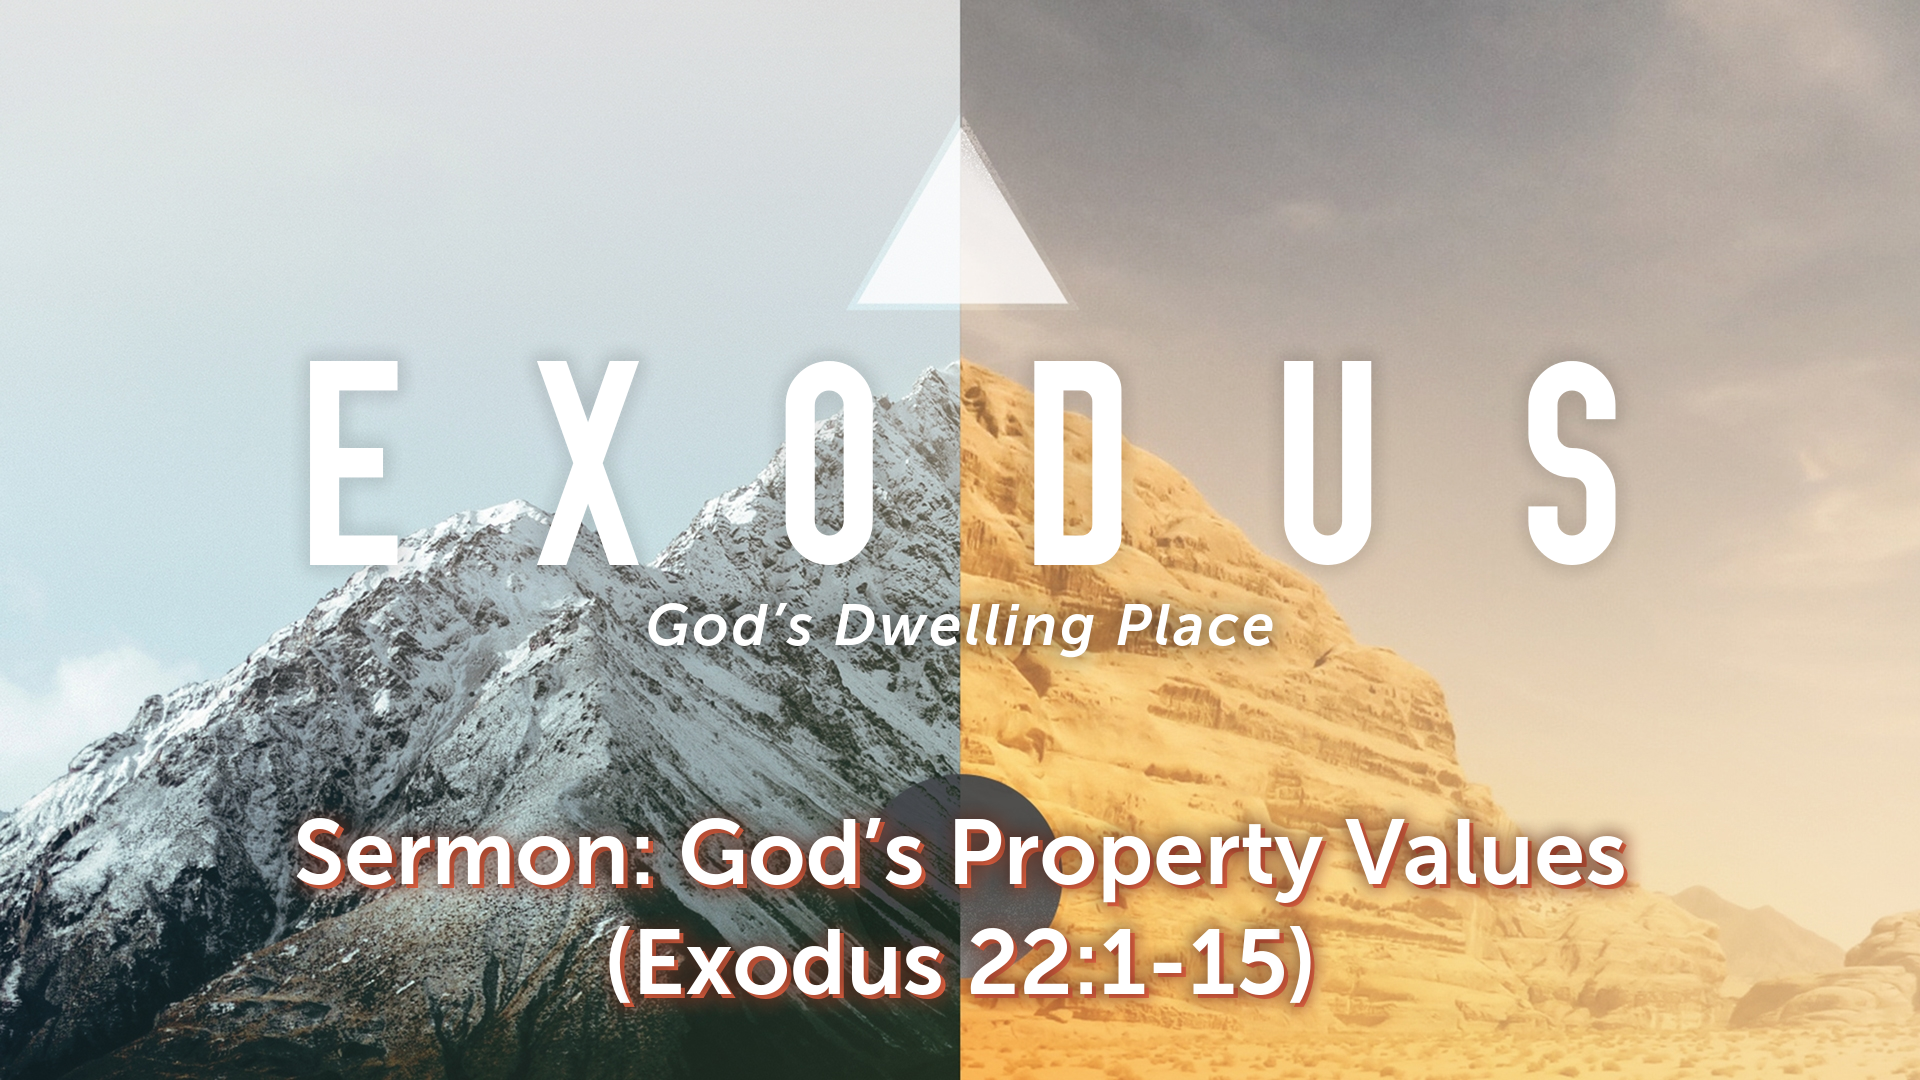 Image for the sermon God's Property Values